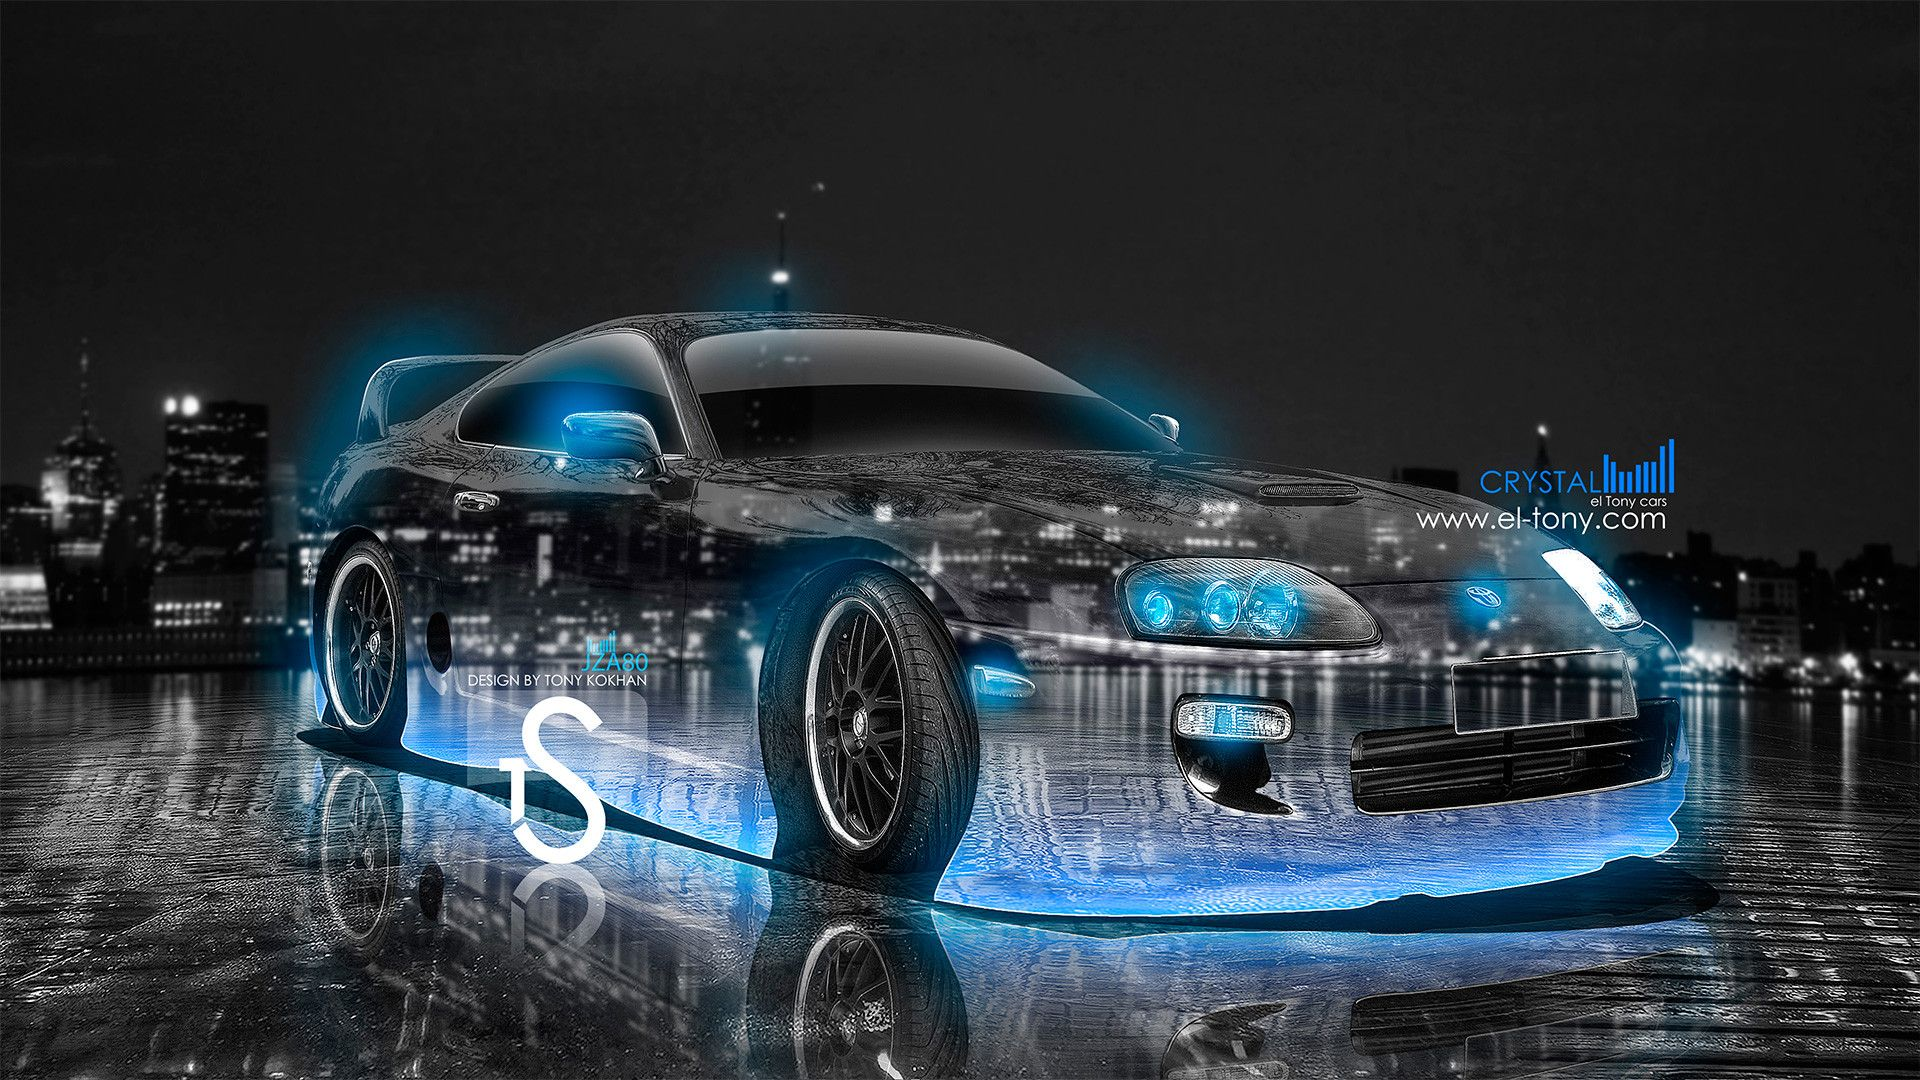 Cool Wallpaper Car Mywallpapers Site Cool Wallpapers Cars Car Wallpapers Neon Car